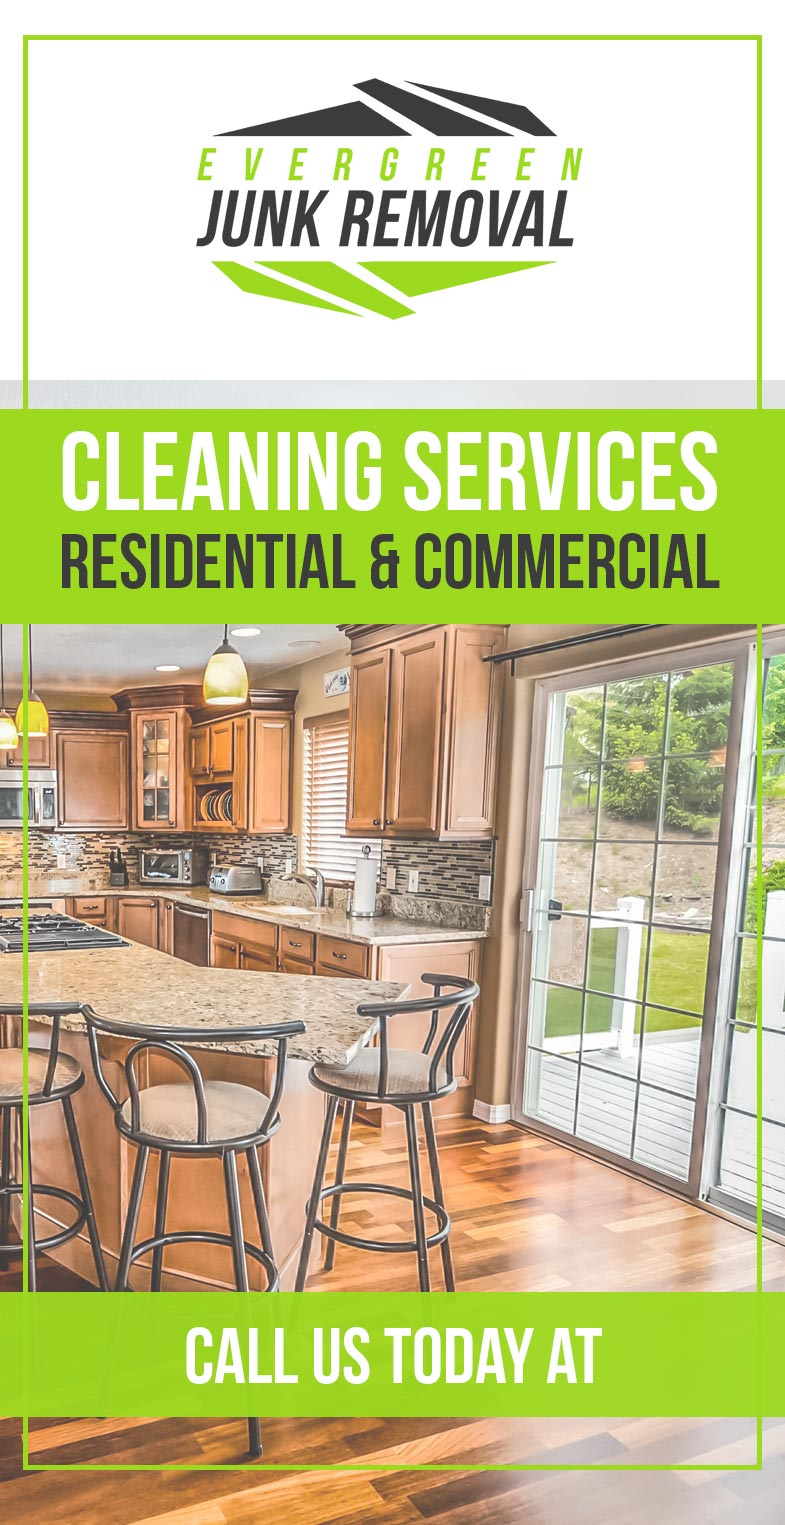 Oakland Park Maid Services